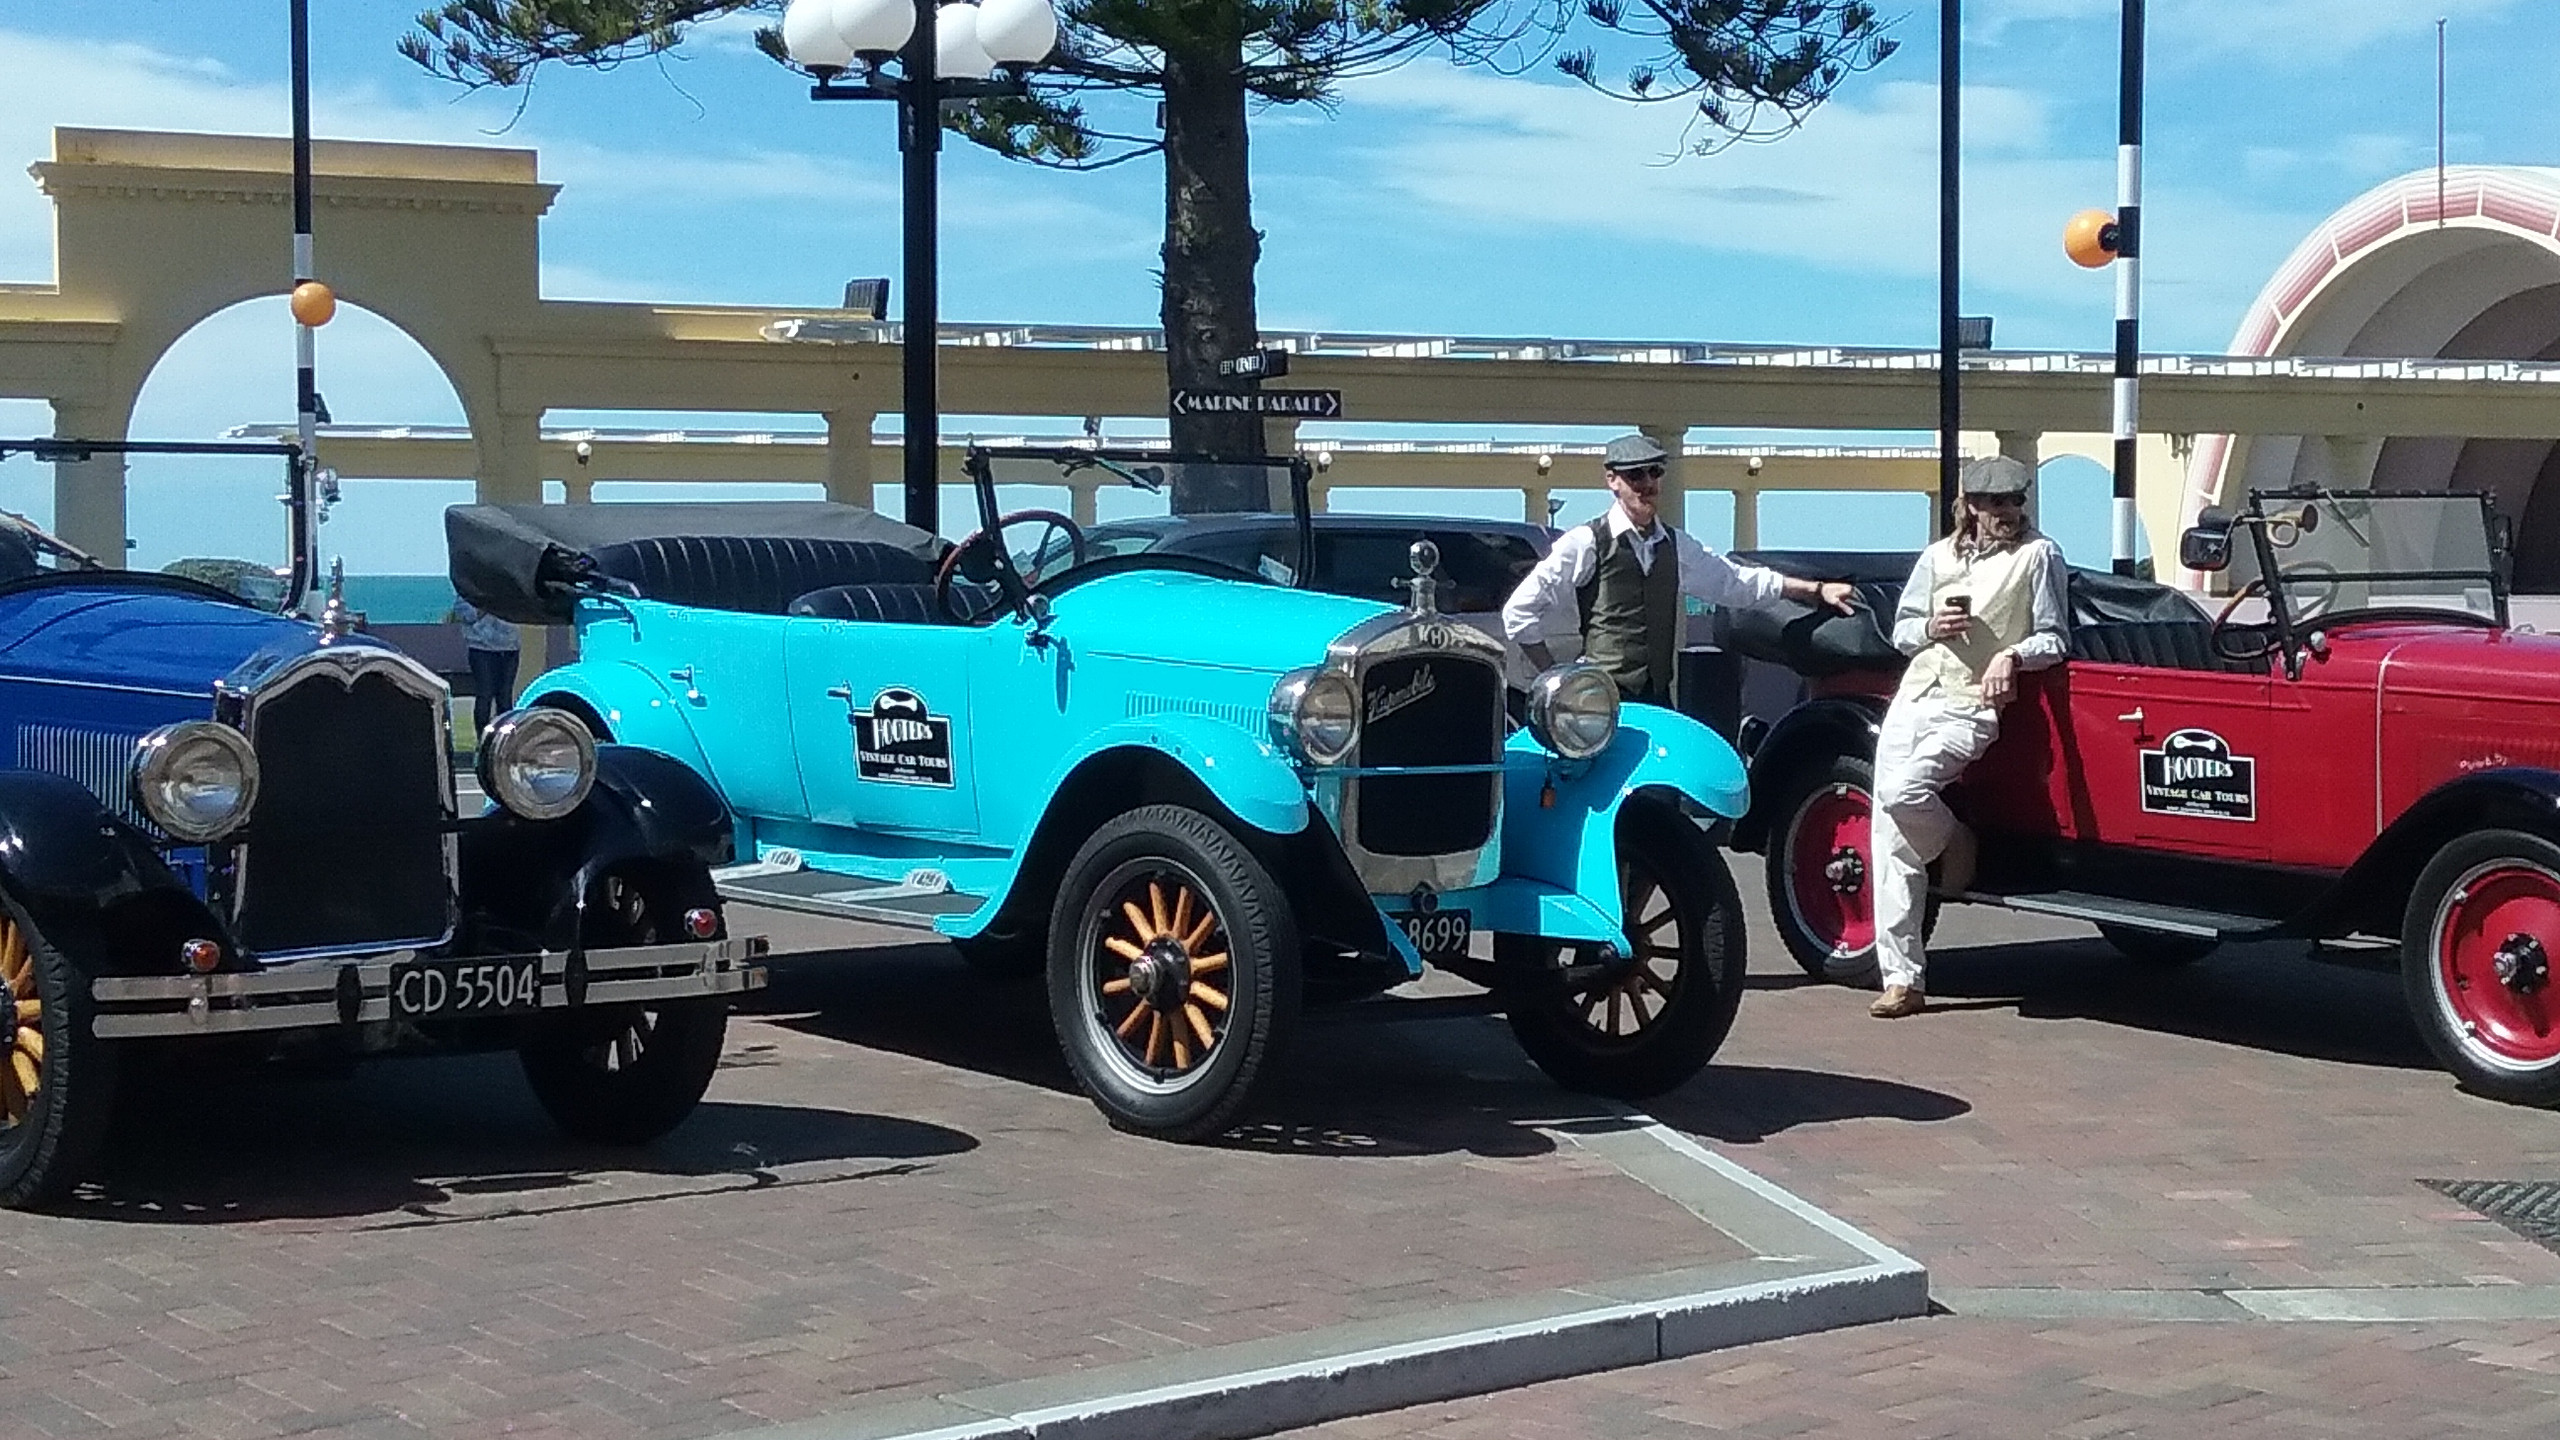 Napier City Tour by Vintage Car, New Zealand attractiona, New Zealand activities